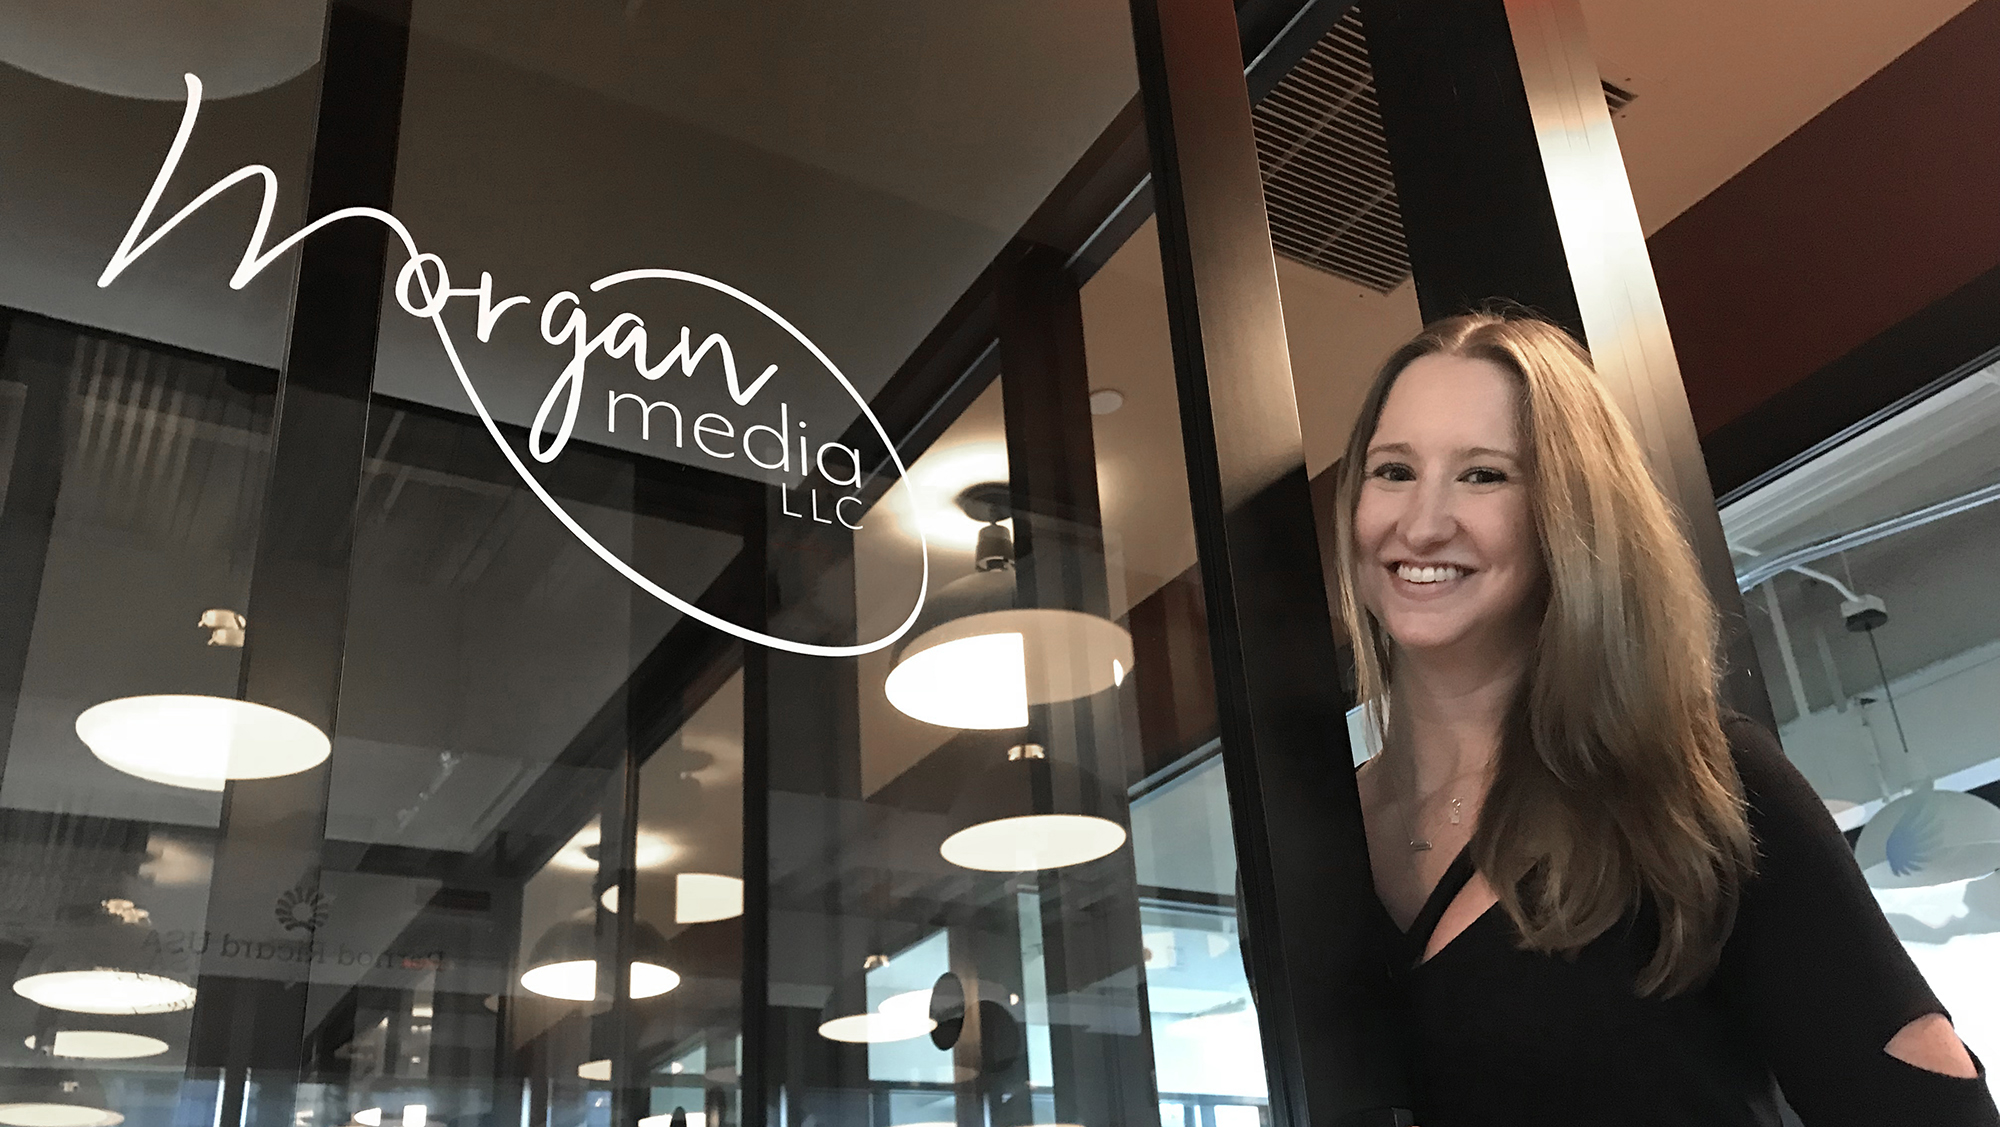 Morgan Overholt, former JTV Host, now owner of her own company